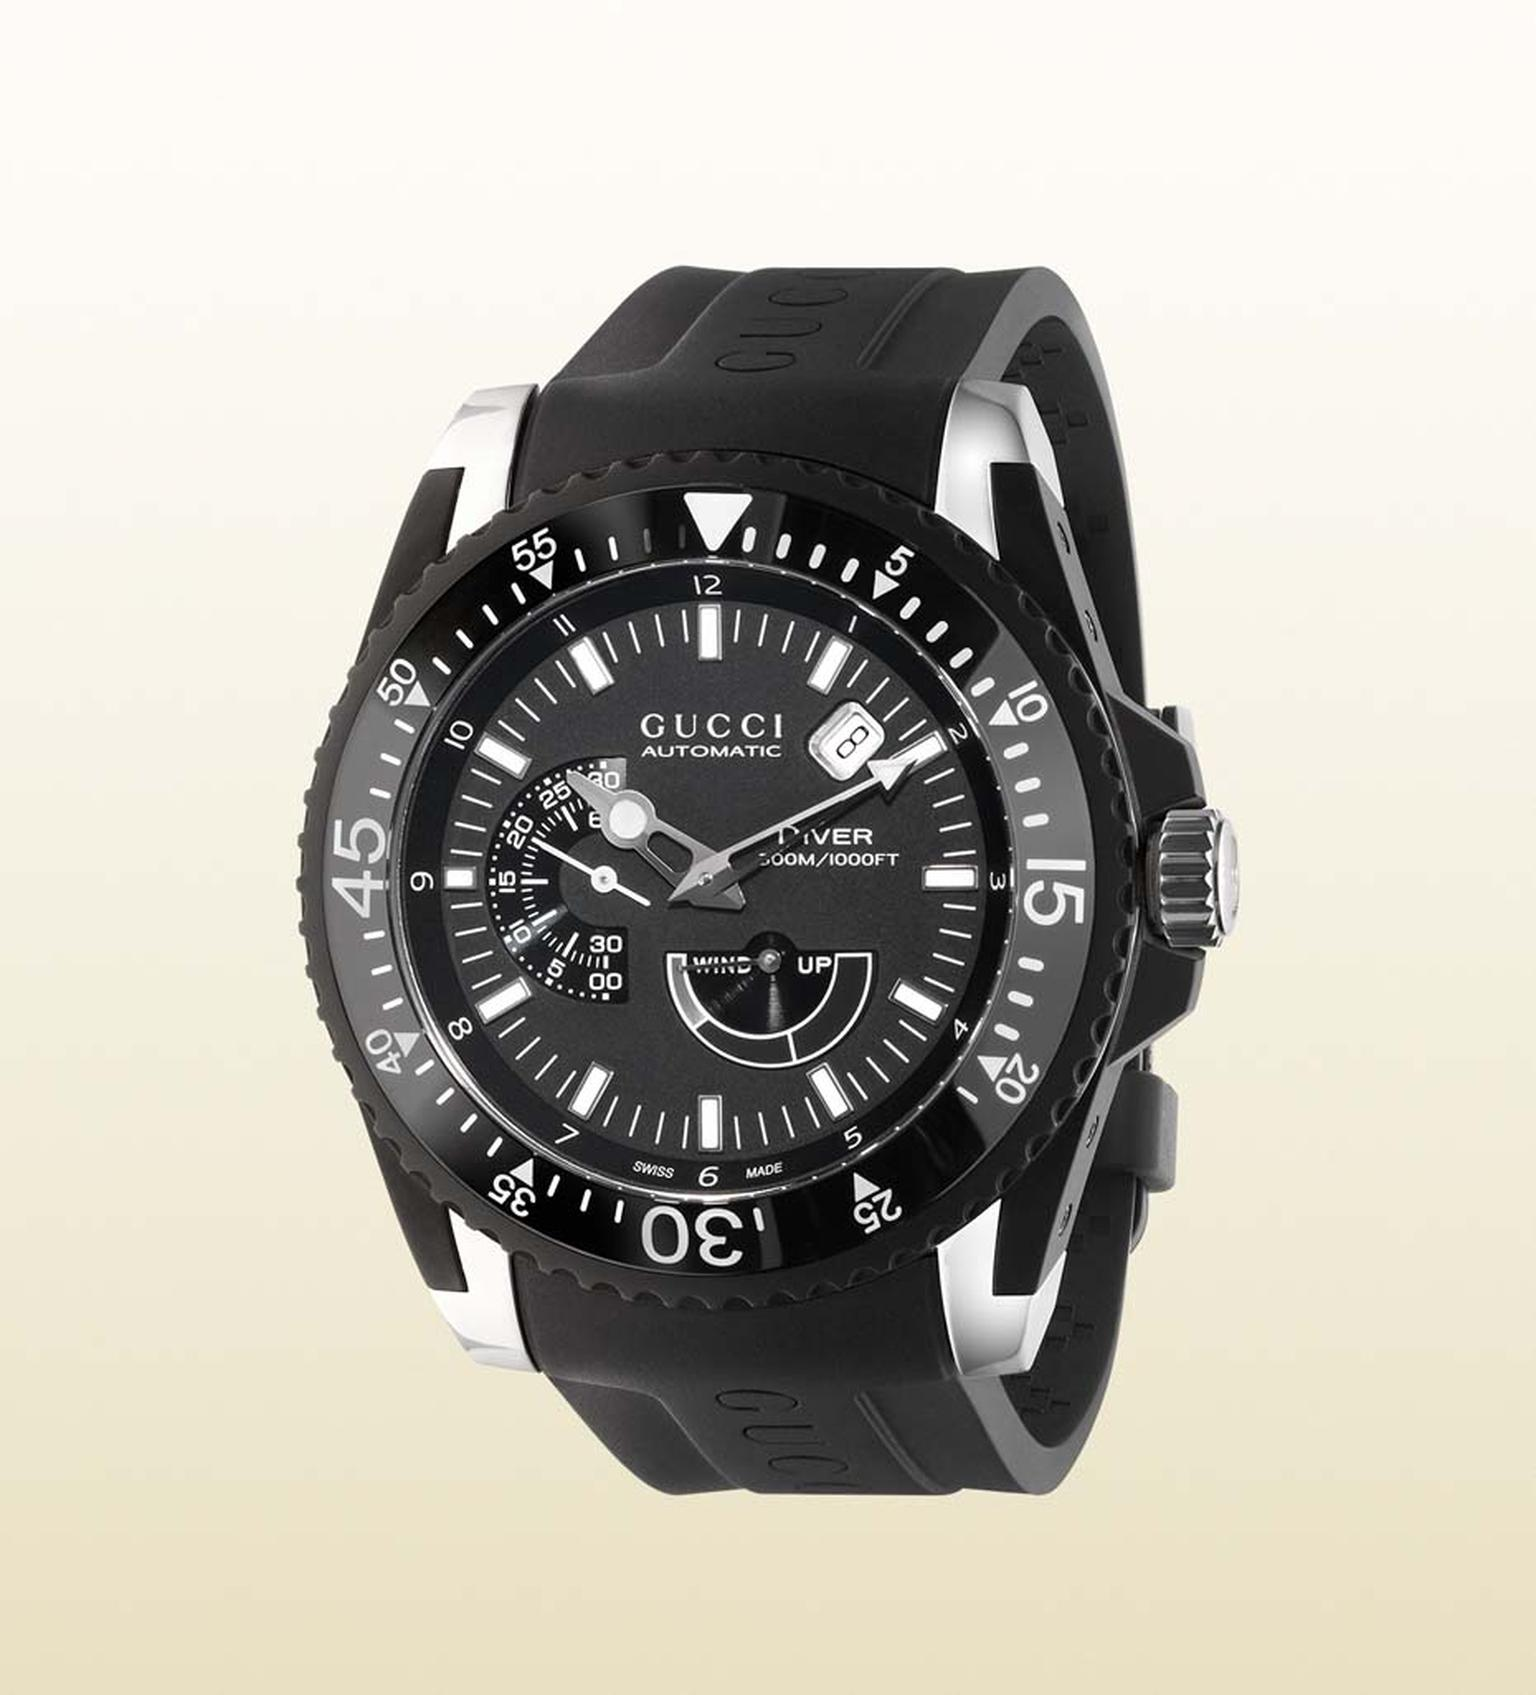 Gucci men's Dive watch will also be presented in a 45mm stainless steel and black PVD model.